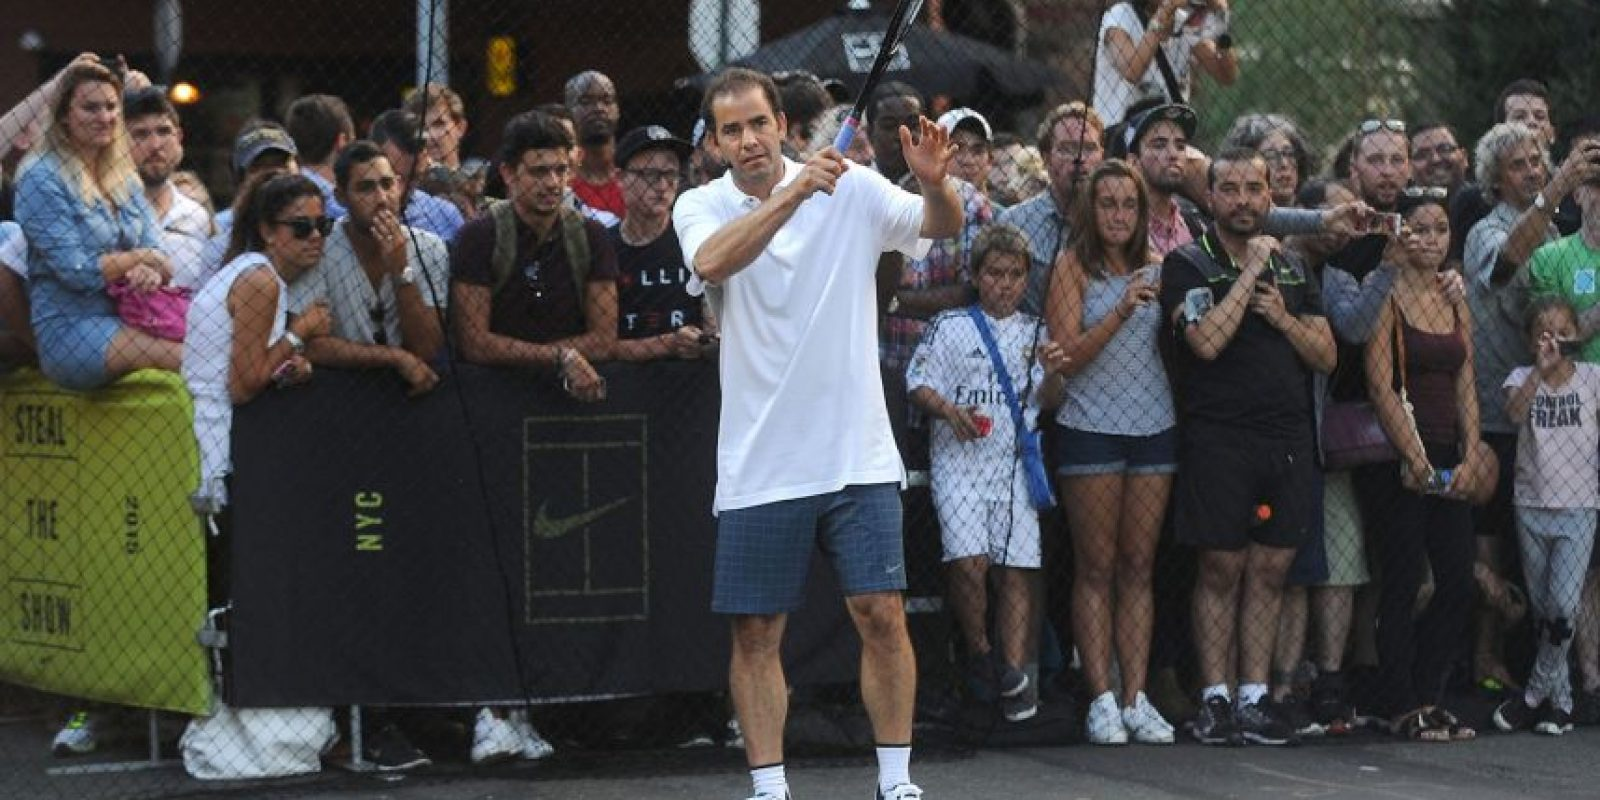 Y claro, los protagonistas del comercial original: Pete Sampras, ganador de 14 Grand Slam. Foto: Getty Images